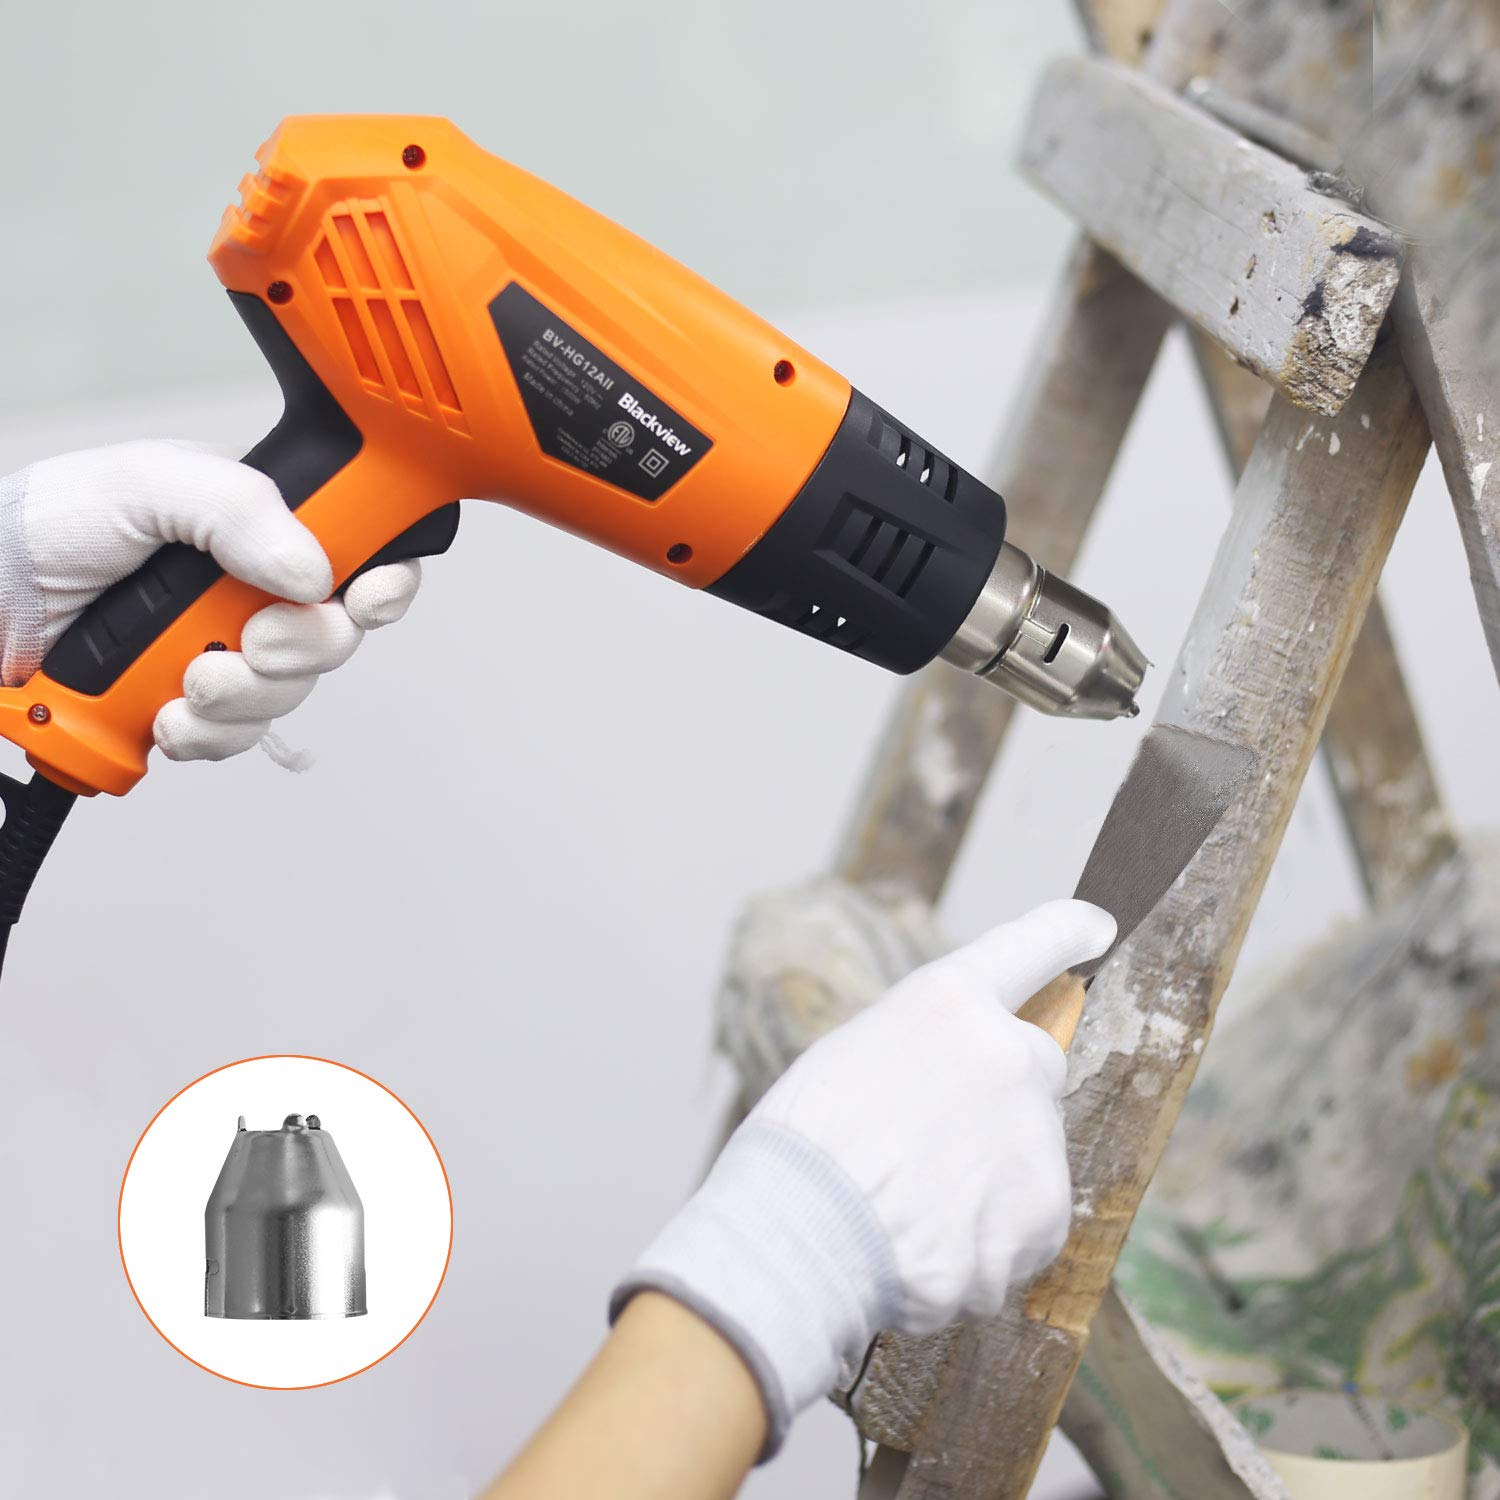 Blackview Heat Gun 1500W Heavy Duty Hot Air Gun with 2-Temp Settings 4 Nozzles 662℉~1022℉(350℃- 550℃)with Overload Protection for Crafts, Shrinking PVC, Stripping Paint, Bending Pipes, Lighting BBQ by Blackview (Image #6)